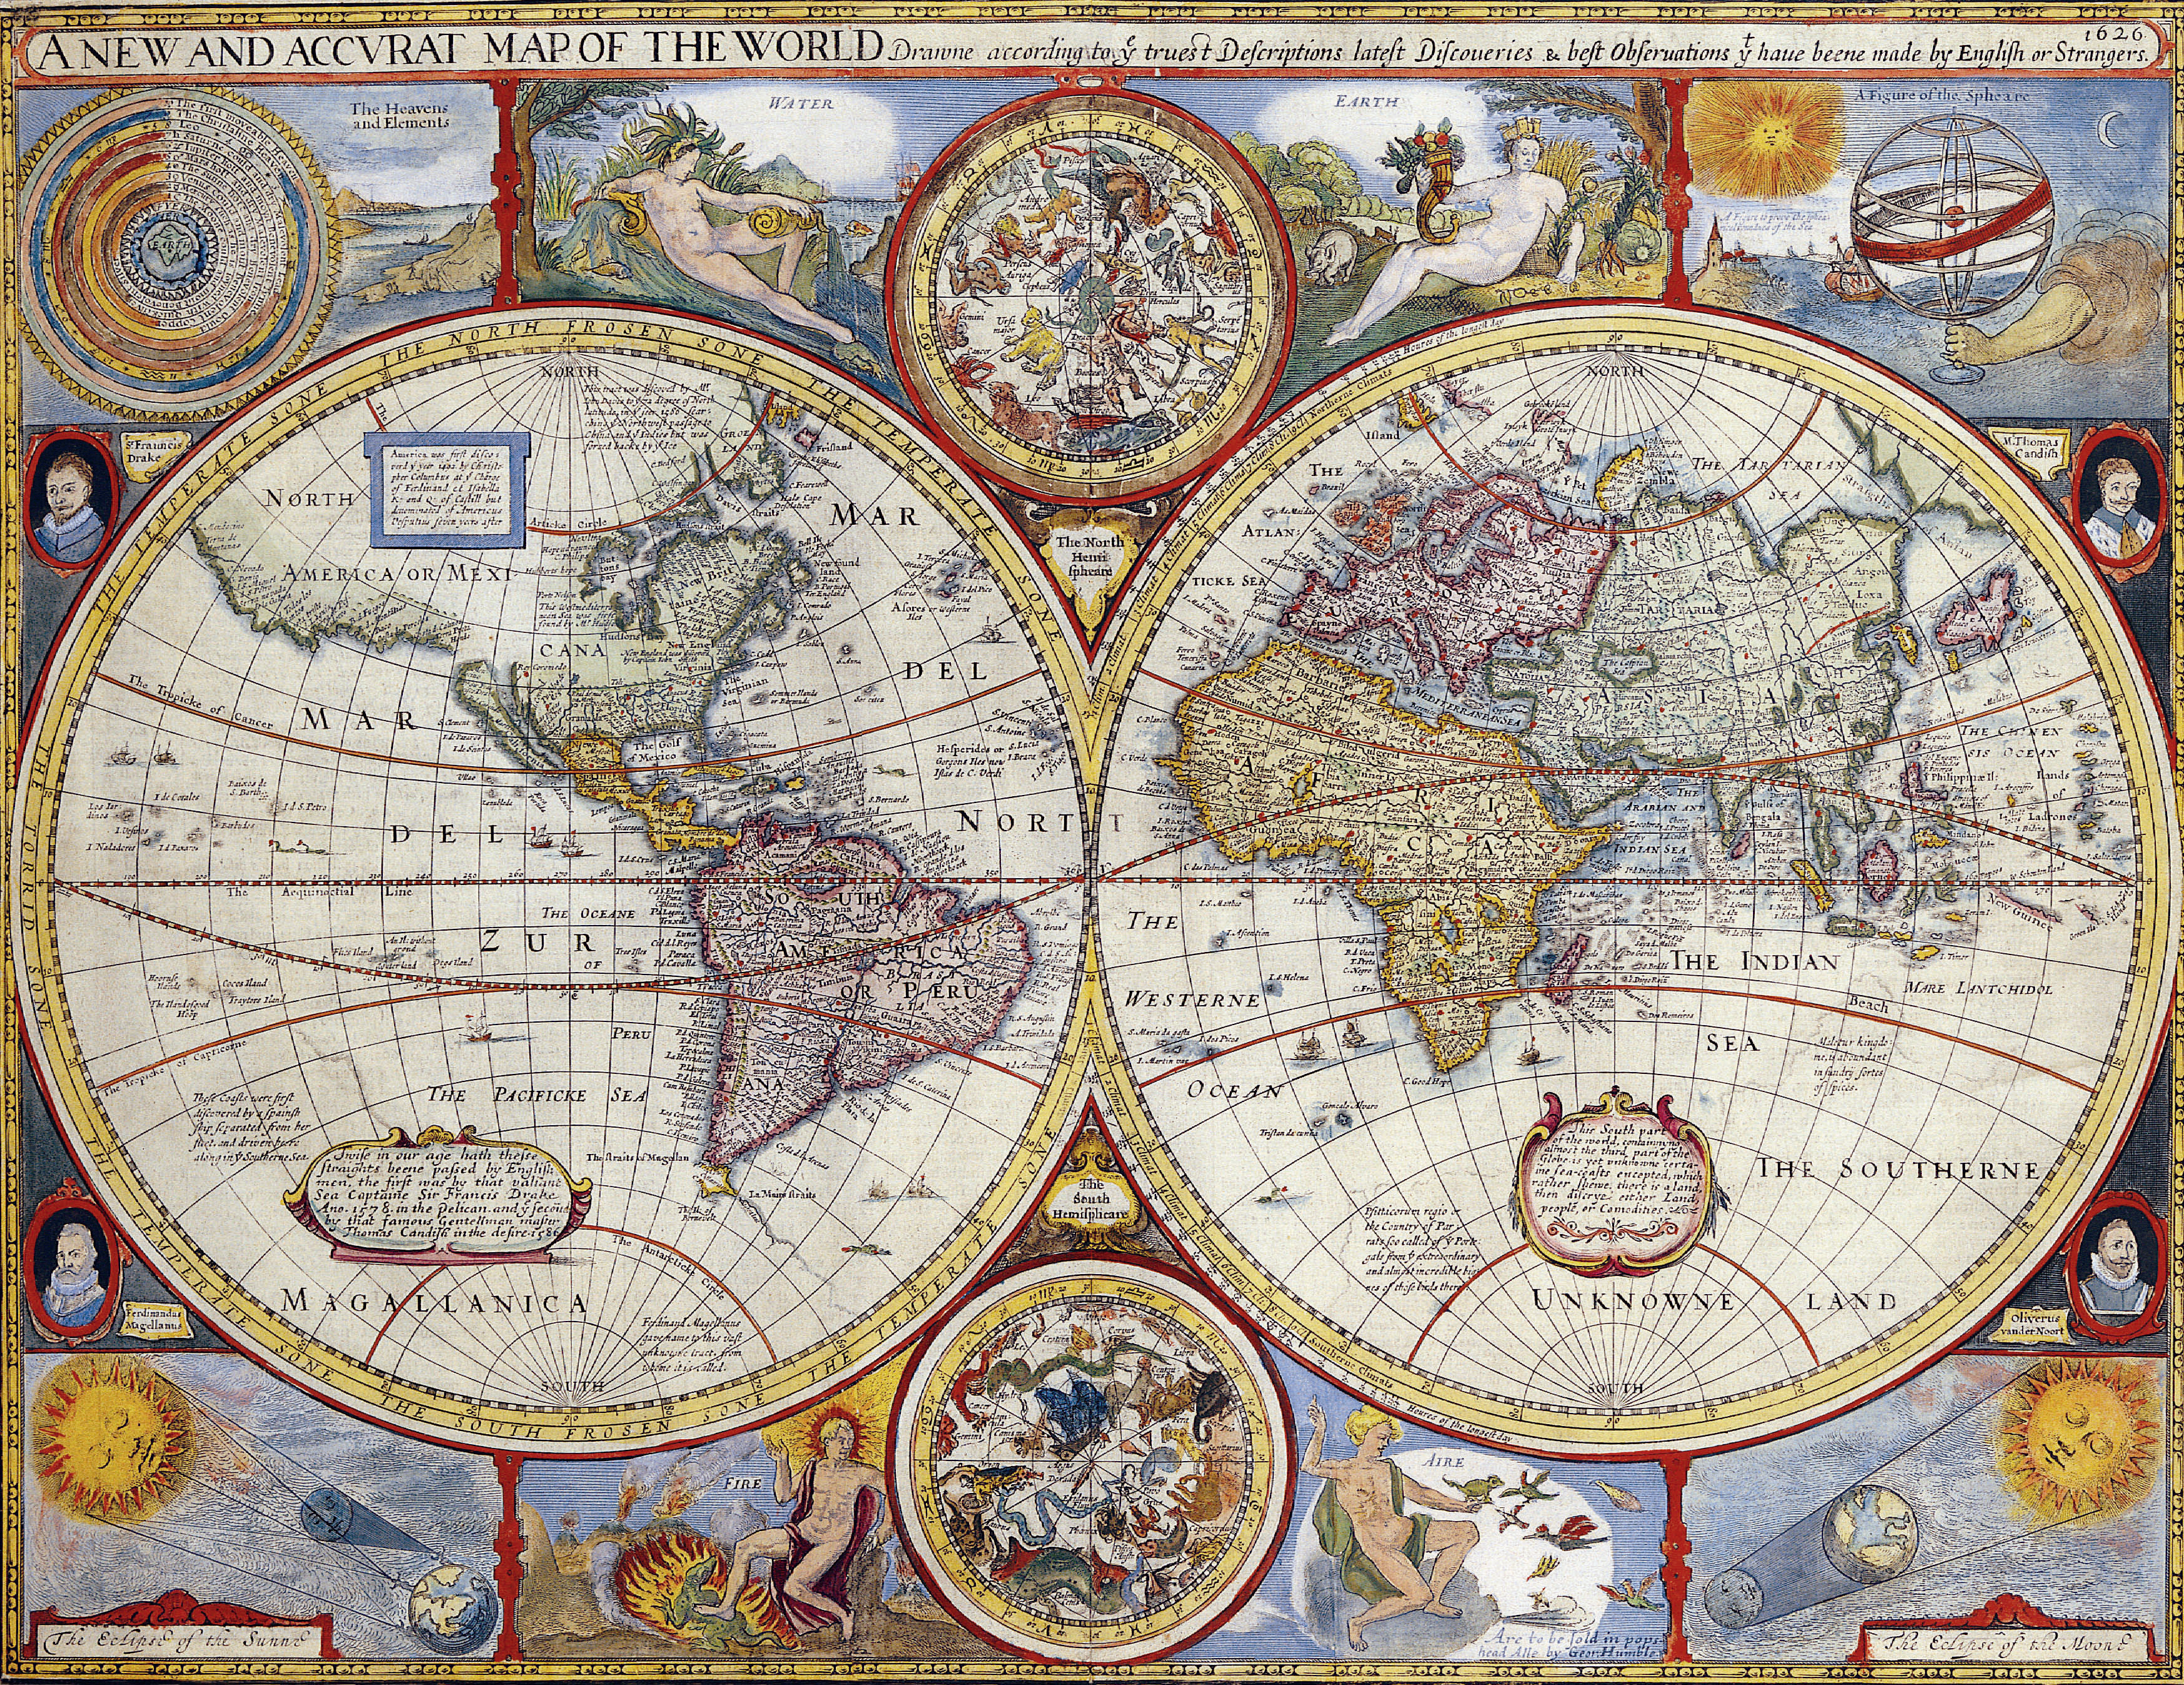 The New Map Of The World.File A New And Accvrat Map Of The World Png Wikimedia Commons